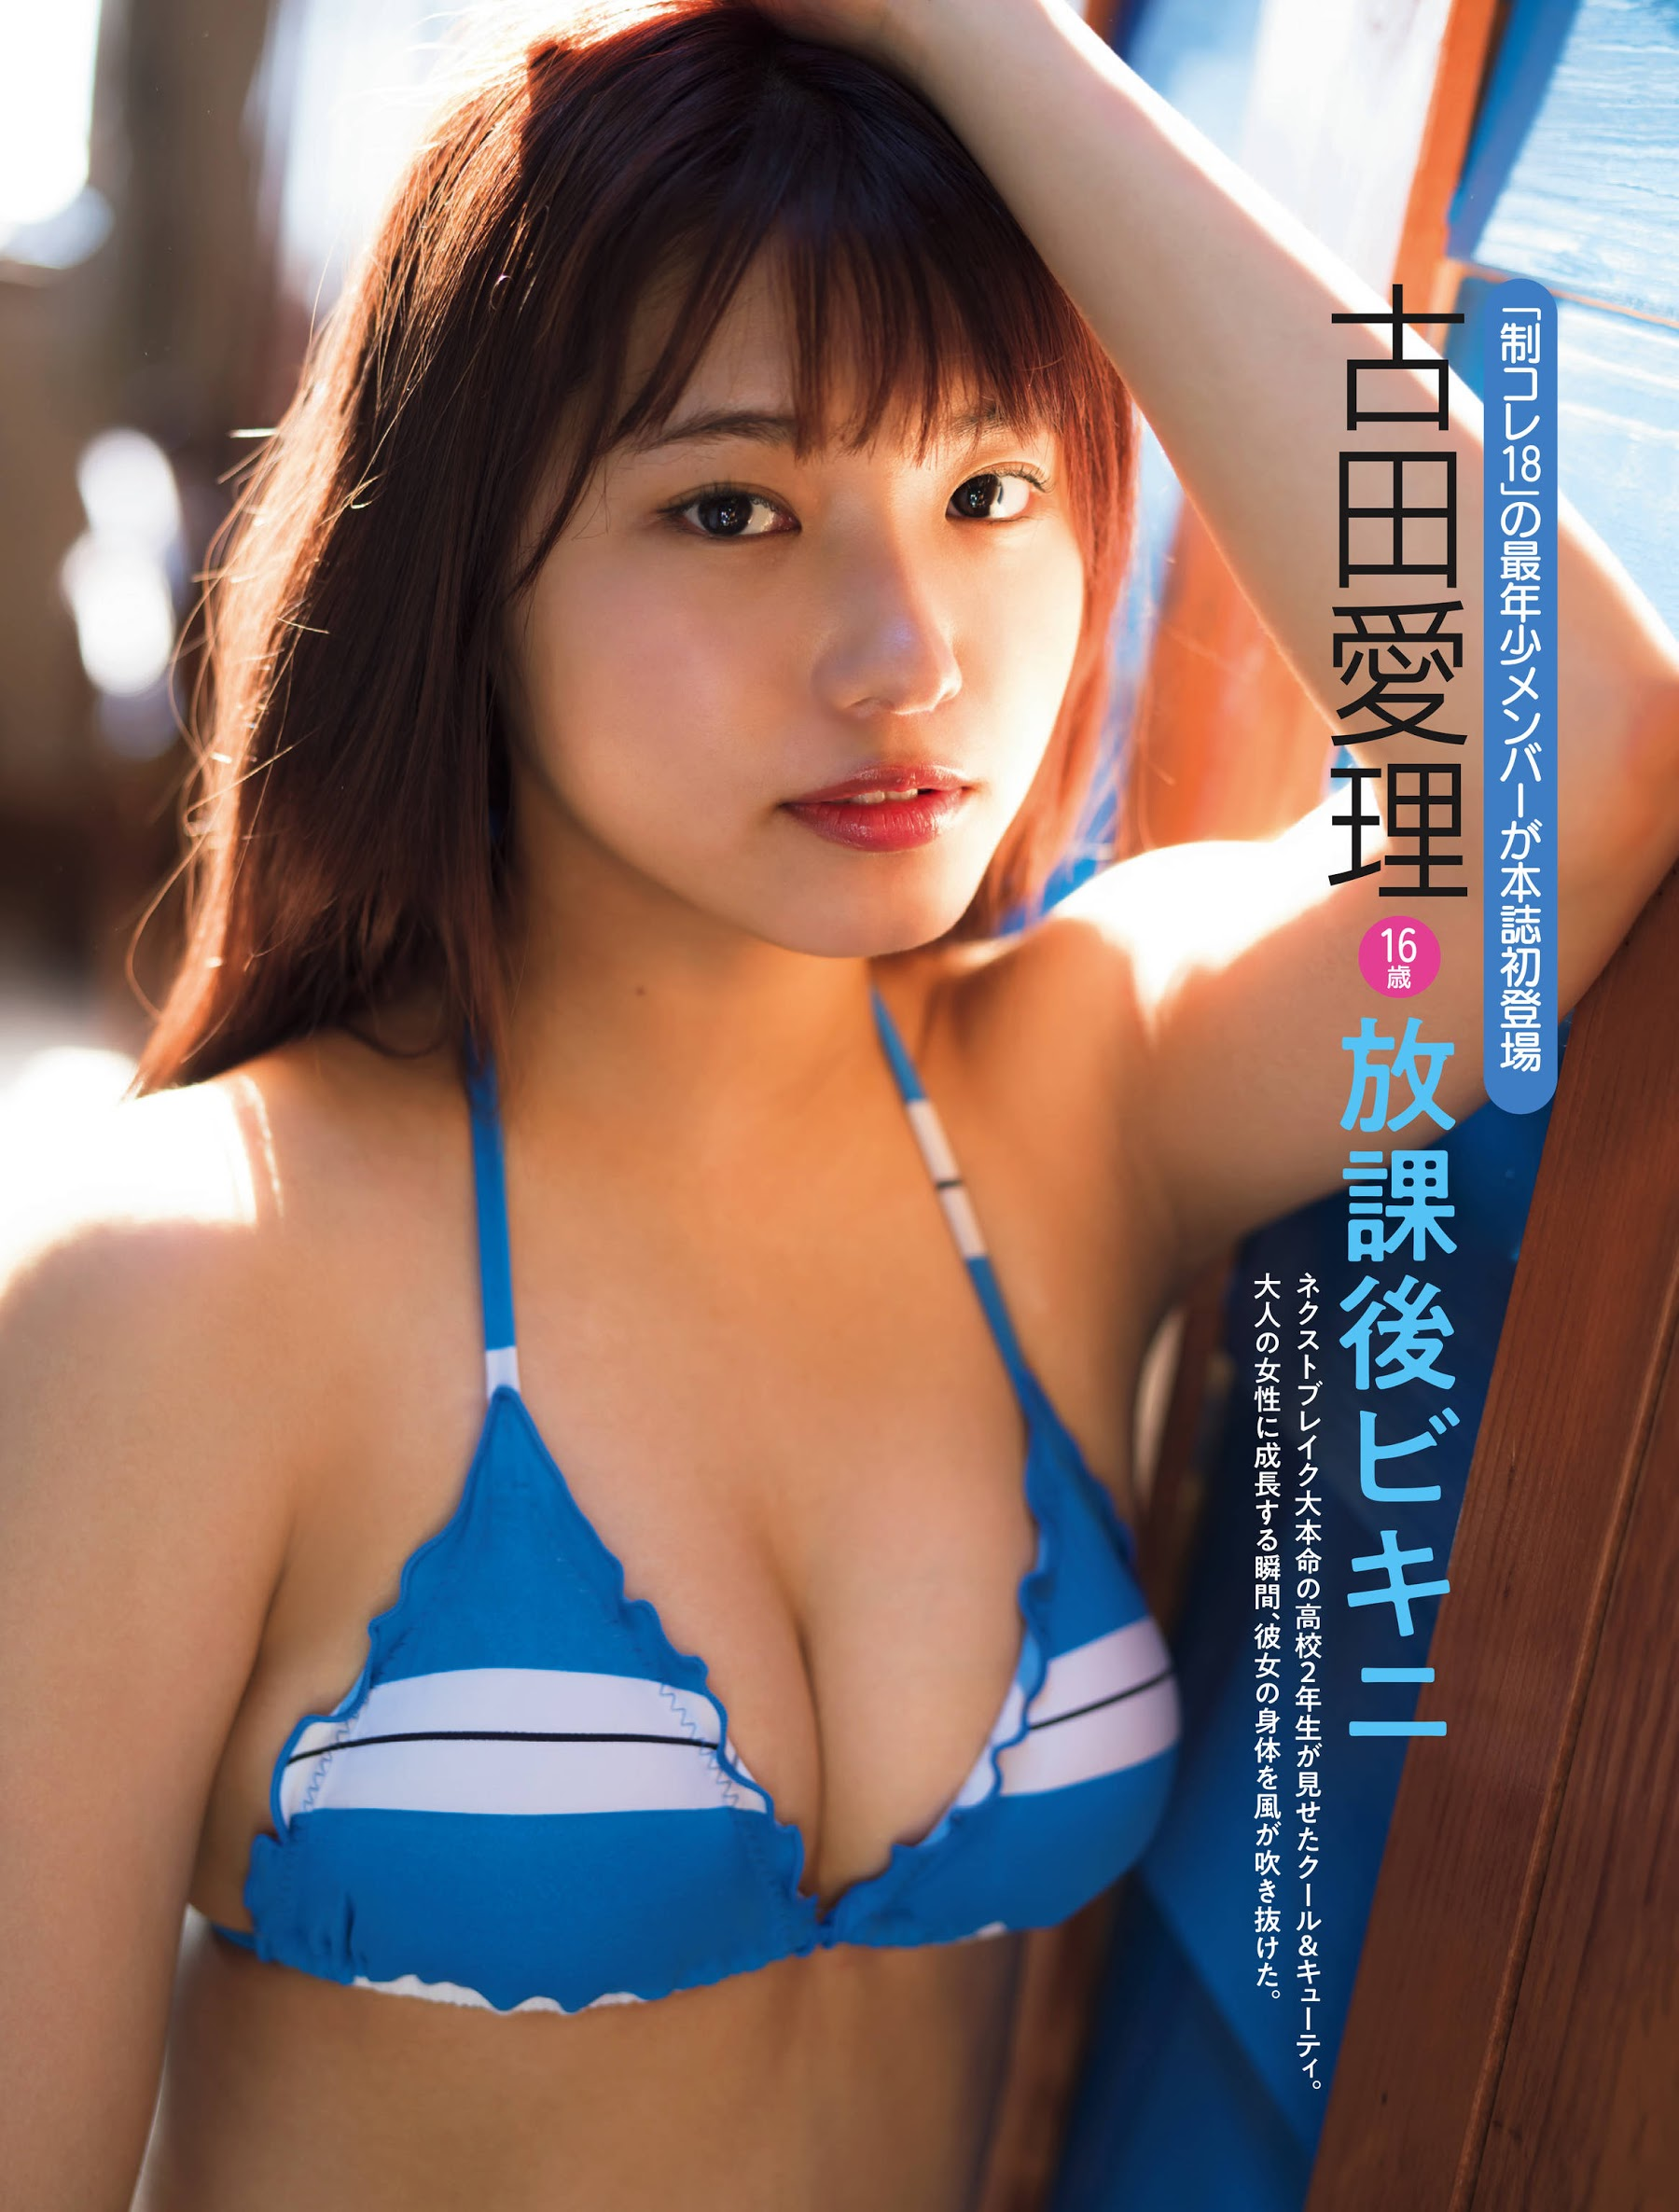 Youngest member of College 18 Airi Furuta 16 years old Bikini after school 2019001